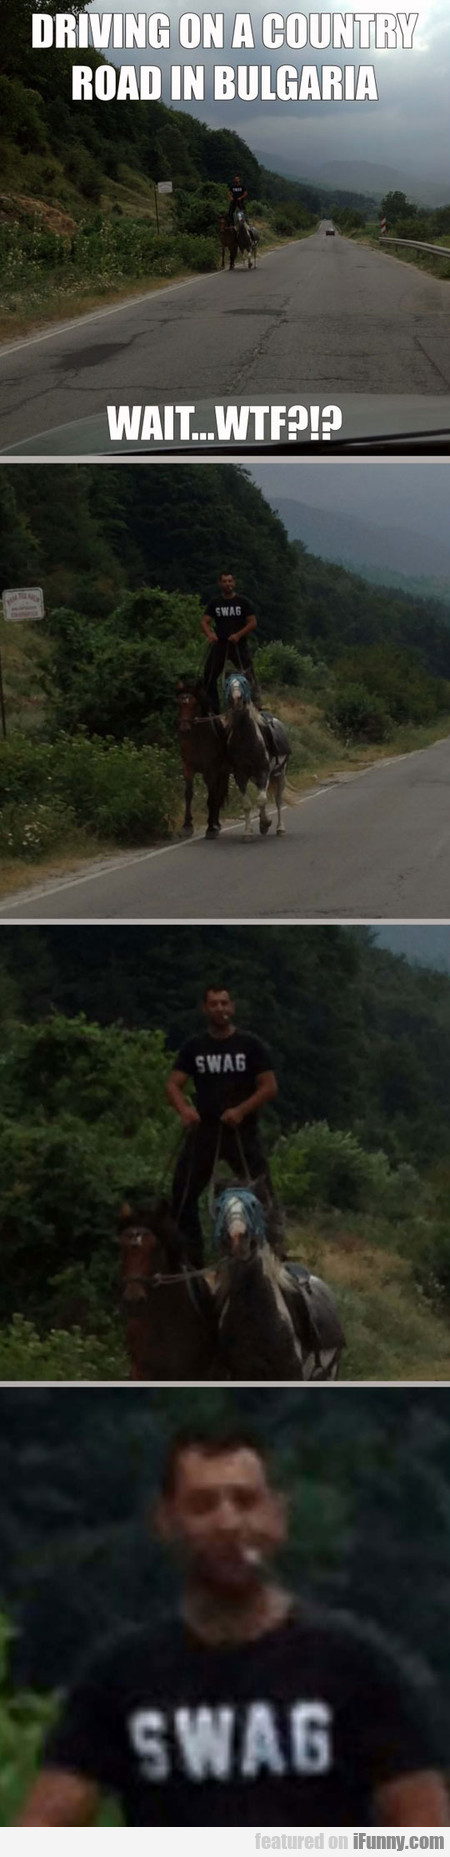 Driving On A Country Road In Bulgaria